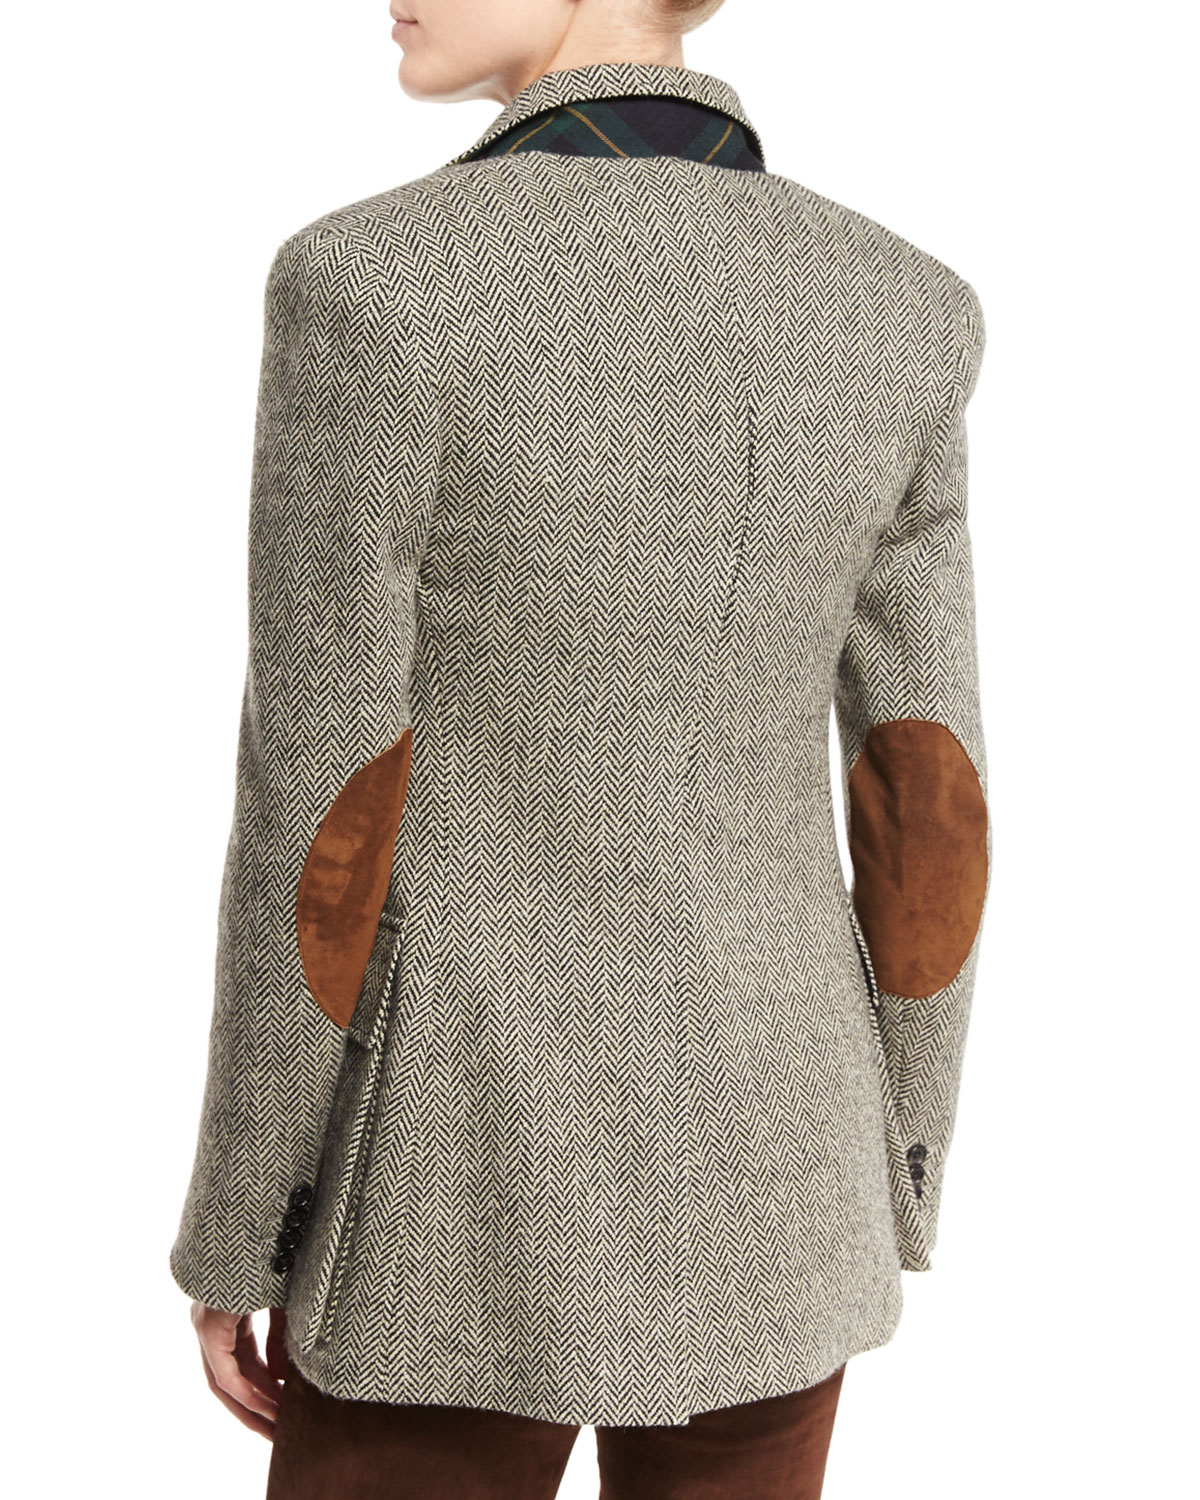 The Tweed Jacket, Black/White by Ralph Lauren Collection